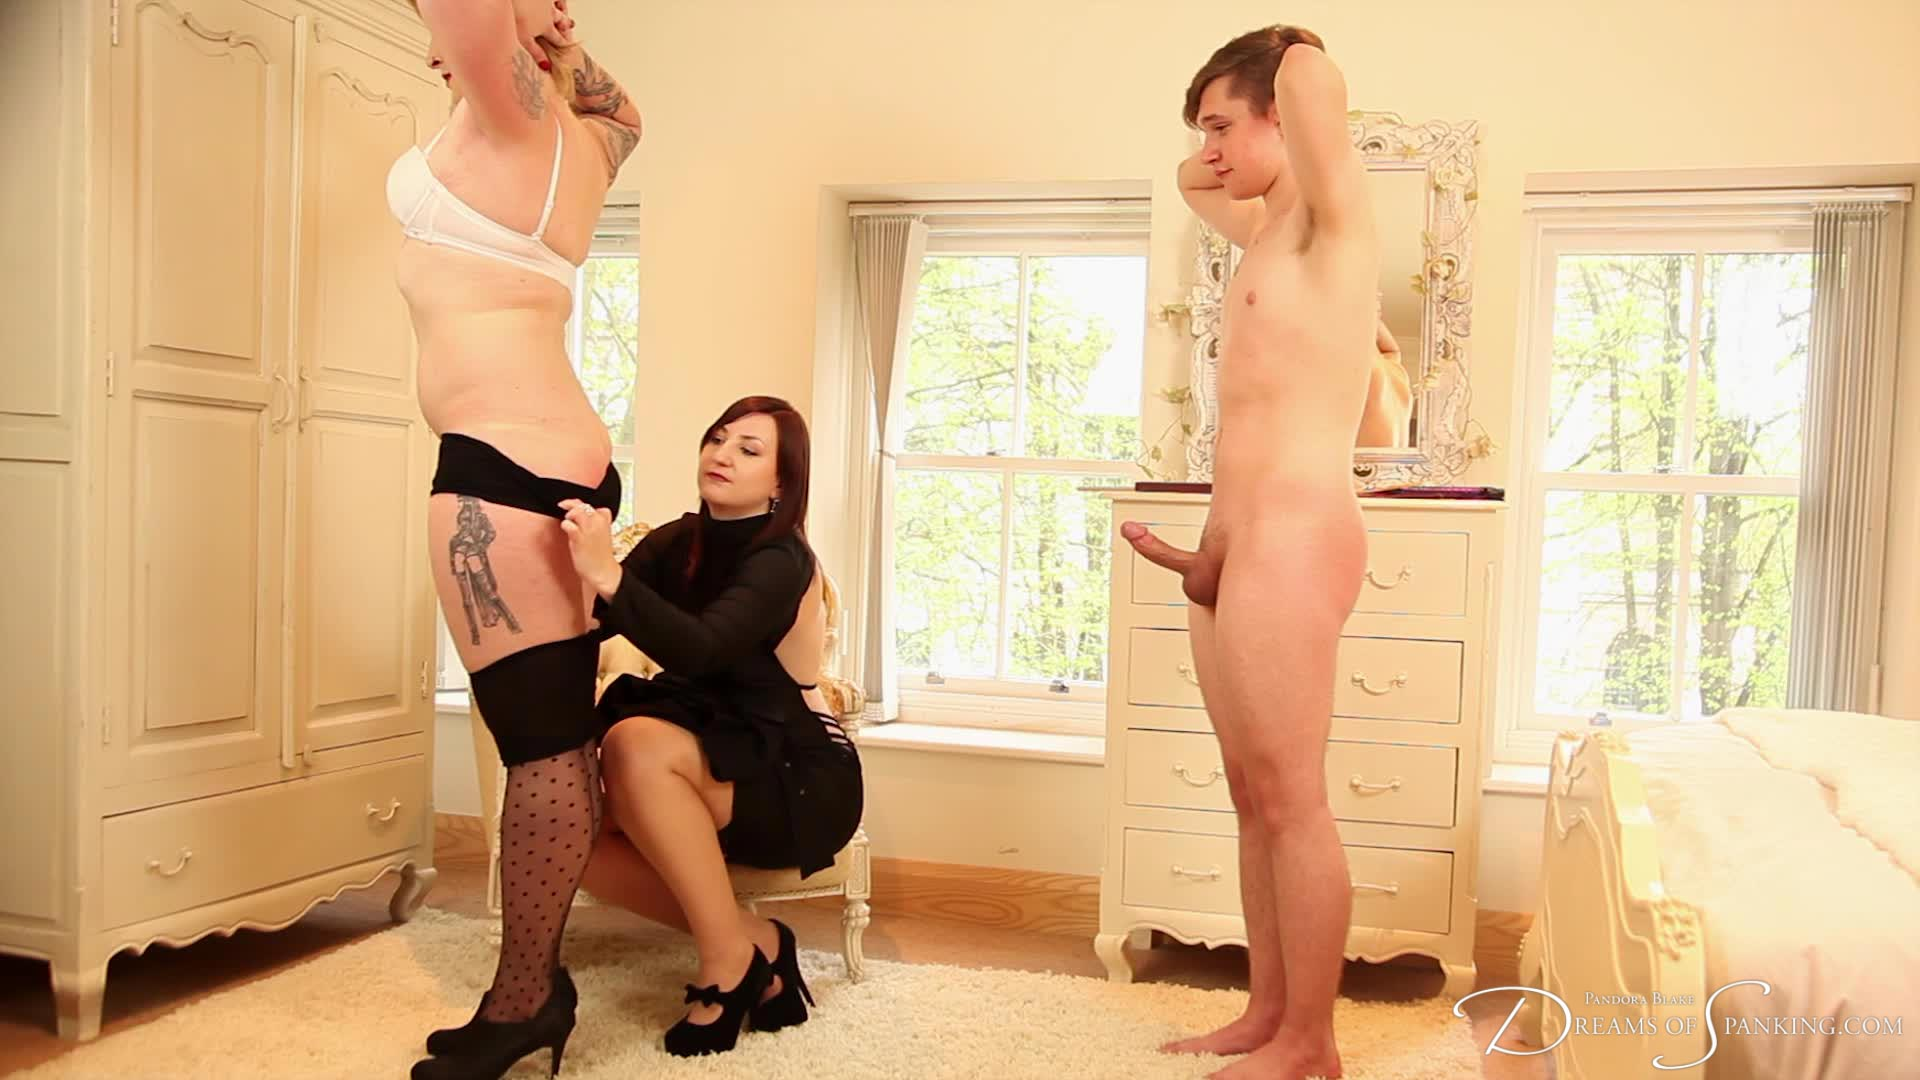 Join the site to view Houseboy - Extended Edition and all other spanking scenes